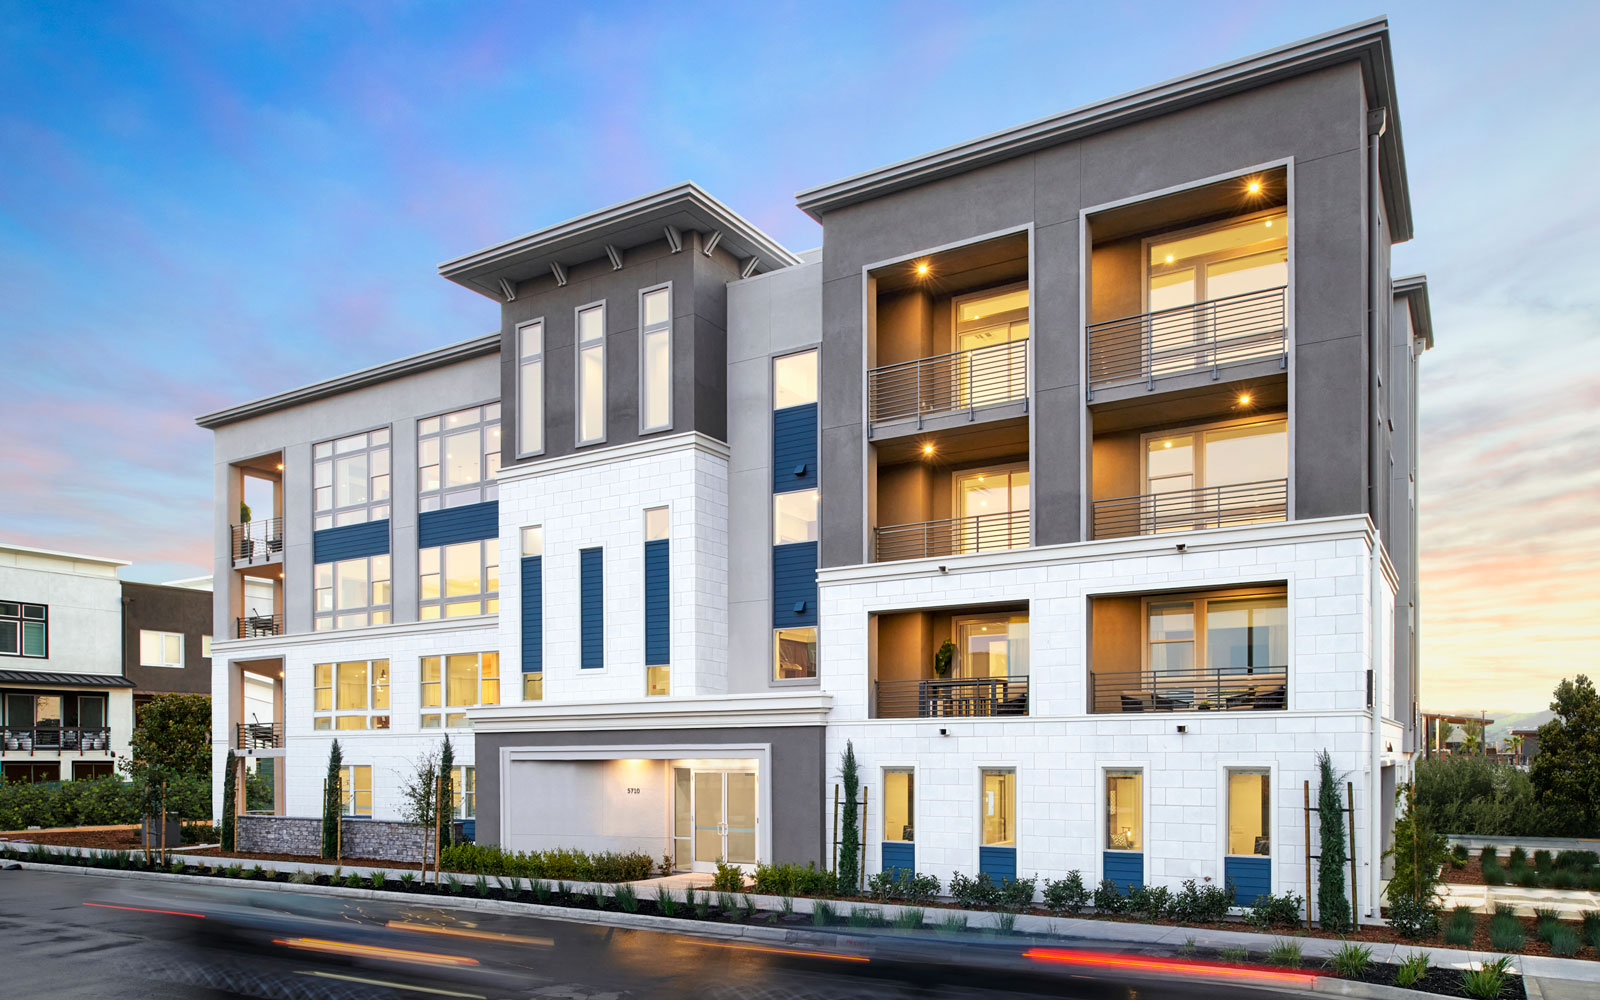 Hyde Park at Boulevard - Real estate for sale in Dublin, CA